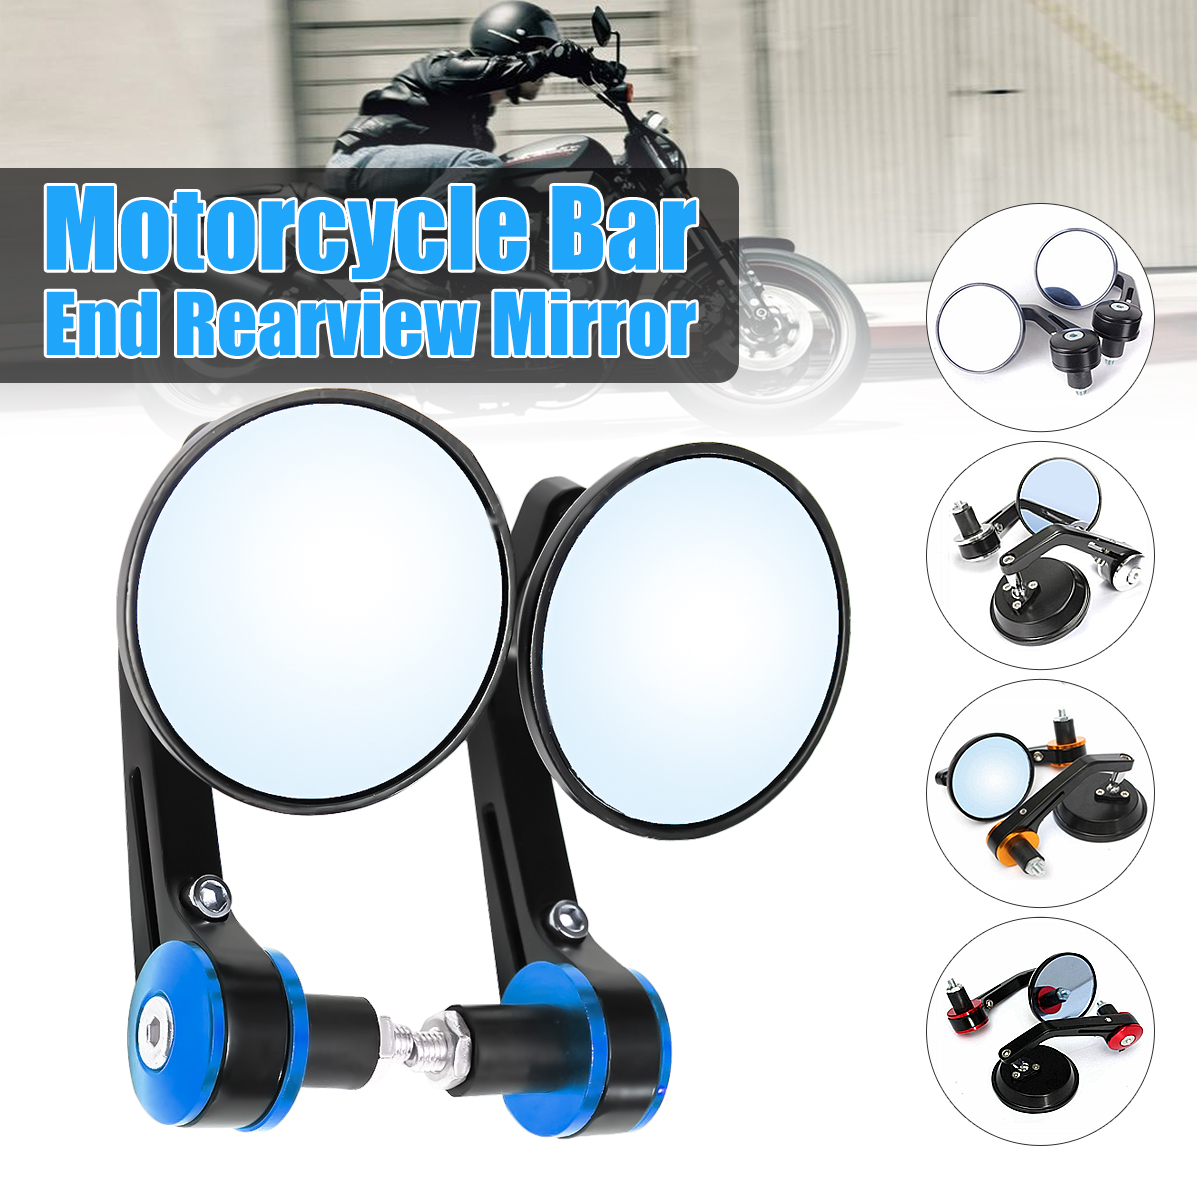 2pcs Universal 7/8 Round Bar End Rear Mirrors Moto Motorcycle Motorbike Scooters Rearview Mirror Side View Mirrors image